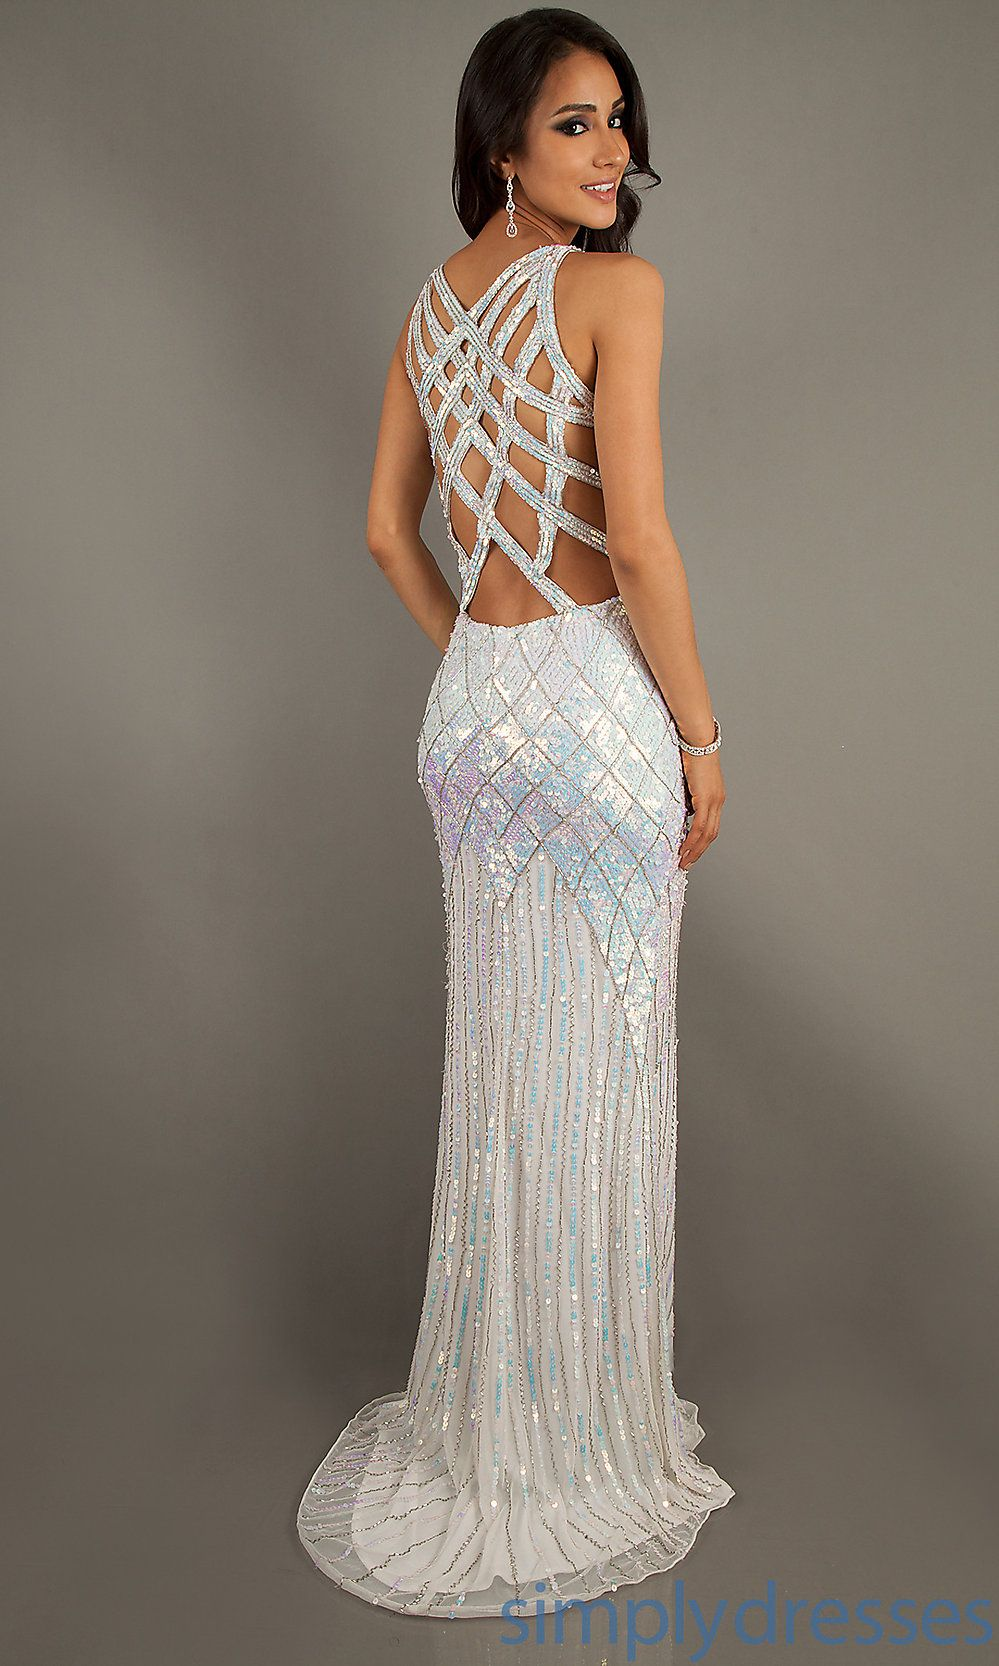 34ac569e Best Mermaid Long V-neck Open Back Sweep Train Sequin Prom/evening/formal  Dresses By Primavera Pv-9490 Customized primavera PV-9490 Availabl.